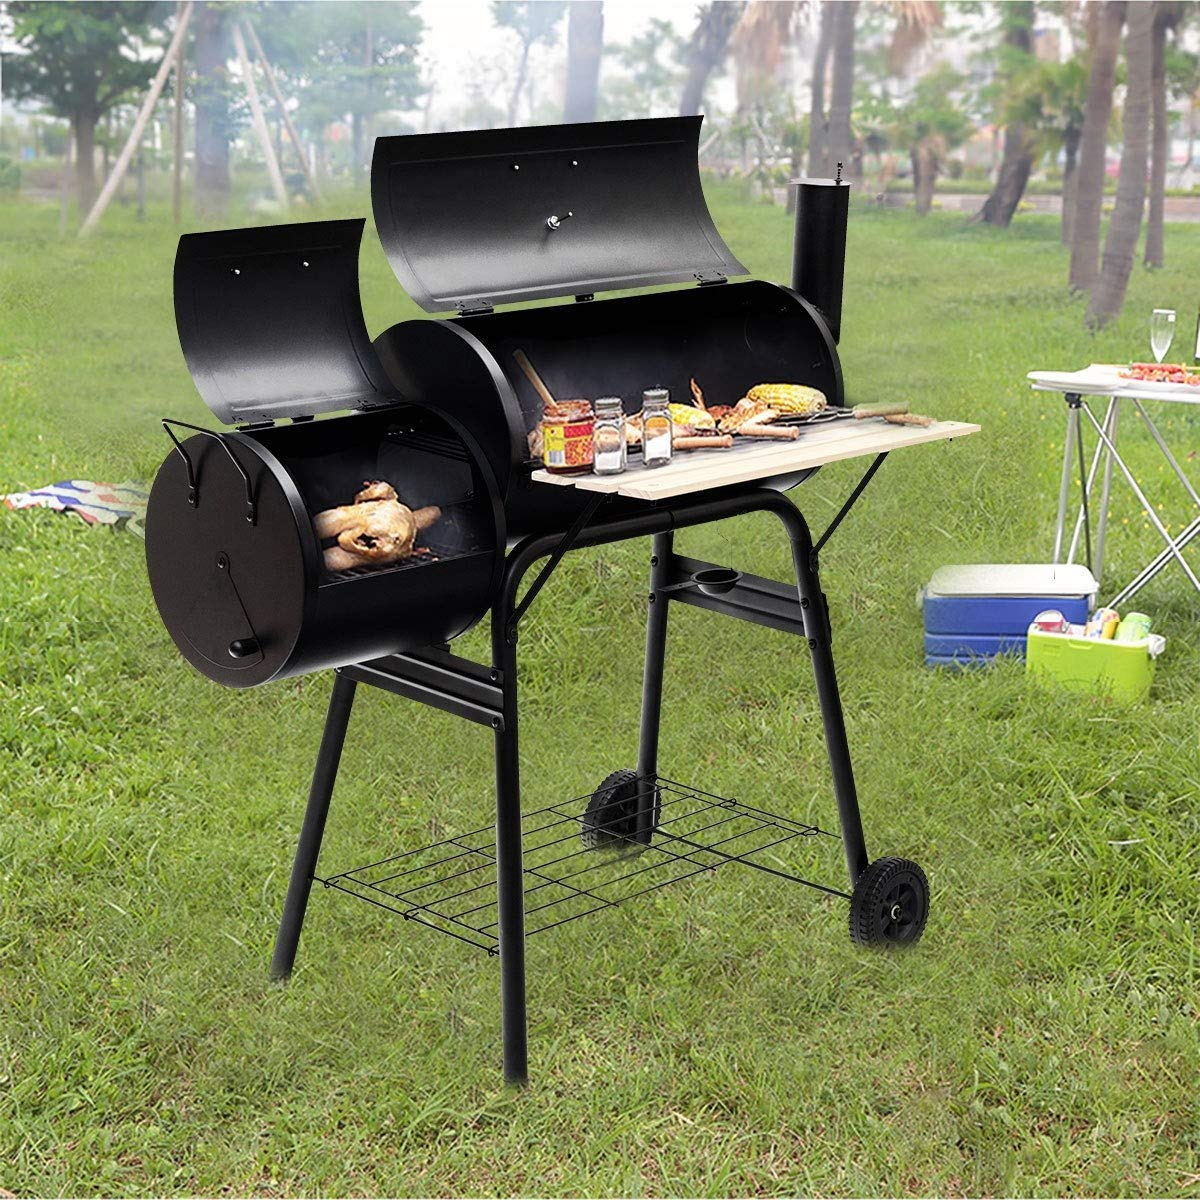 Outdoor BBQ Grill Barbecue Pit Patio Cooker Practical and Fashionable Charcoal Grill Will Enable You to Enjoy Outdoor Cooking with Your Family and Friends. by GraceShop